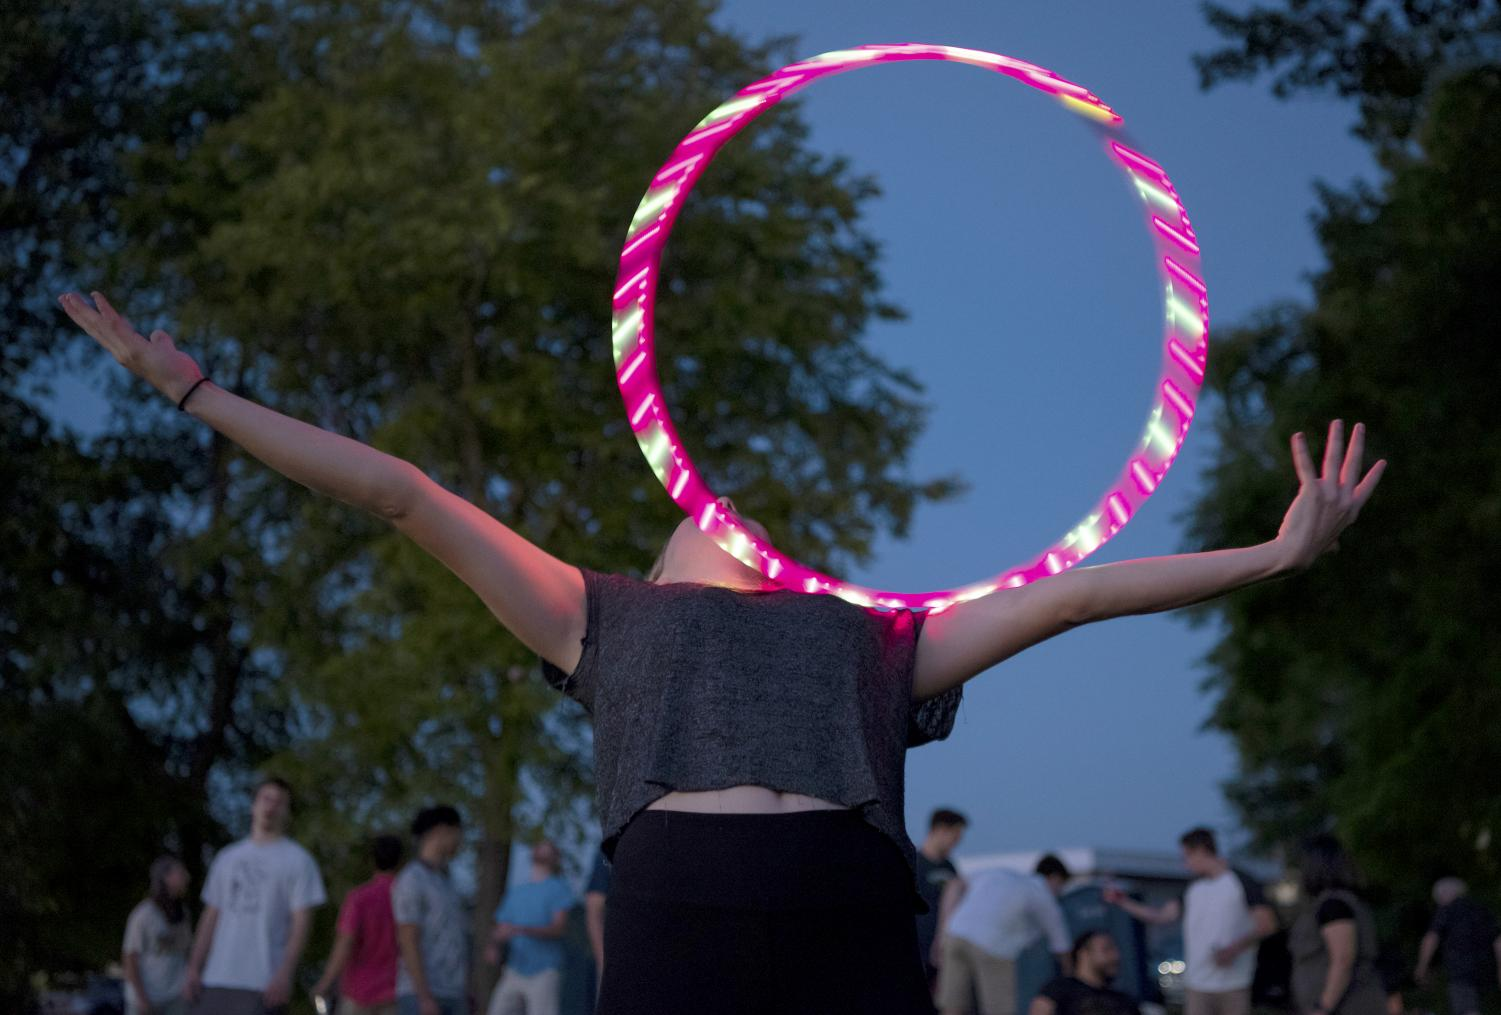 Megan+Wiese%2C+of+Mundelein%2C+rolls+a+hula+hoop+across+her+arms+on+Thursday%2C+June+20%2C+2019%2C+during+the+Sunset+Concert+at+Carbondale%E2%80%99s+Lenus+Turley+Park.+